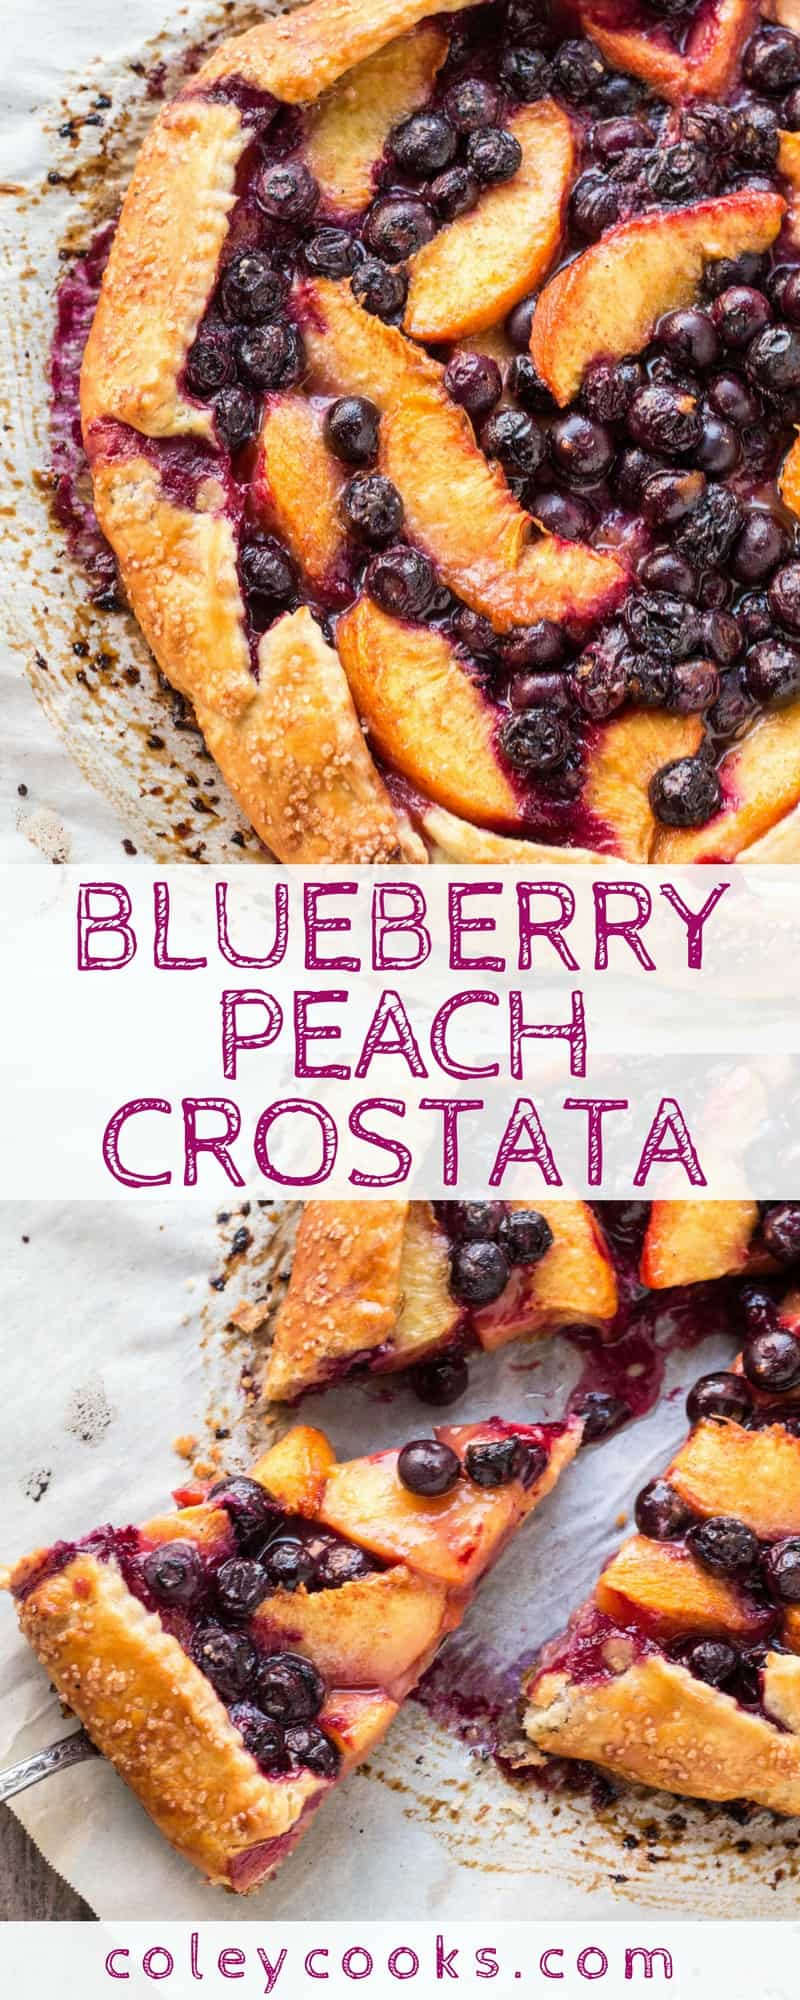 BLUEBERRY PEACH CROSTATA | This easy summer dessert recipe combines peaches and blueberries in a simple Italian style free-form tart, like a galette! Easier alternative to pie! | ColeyCooks.com